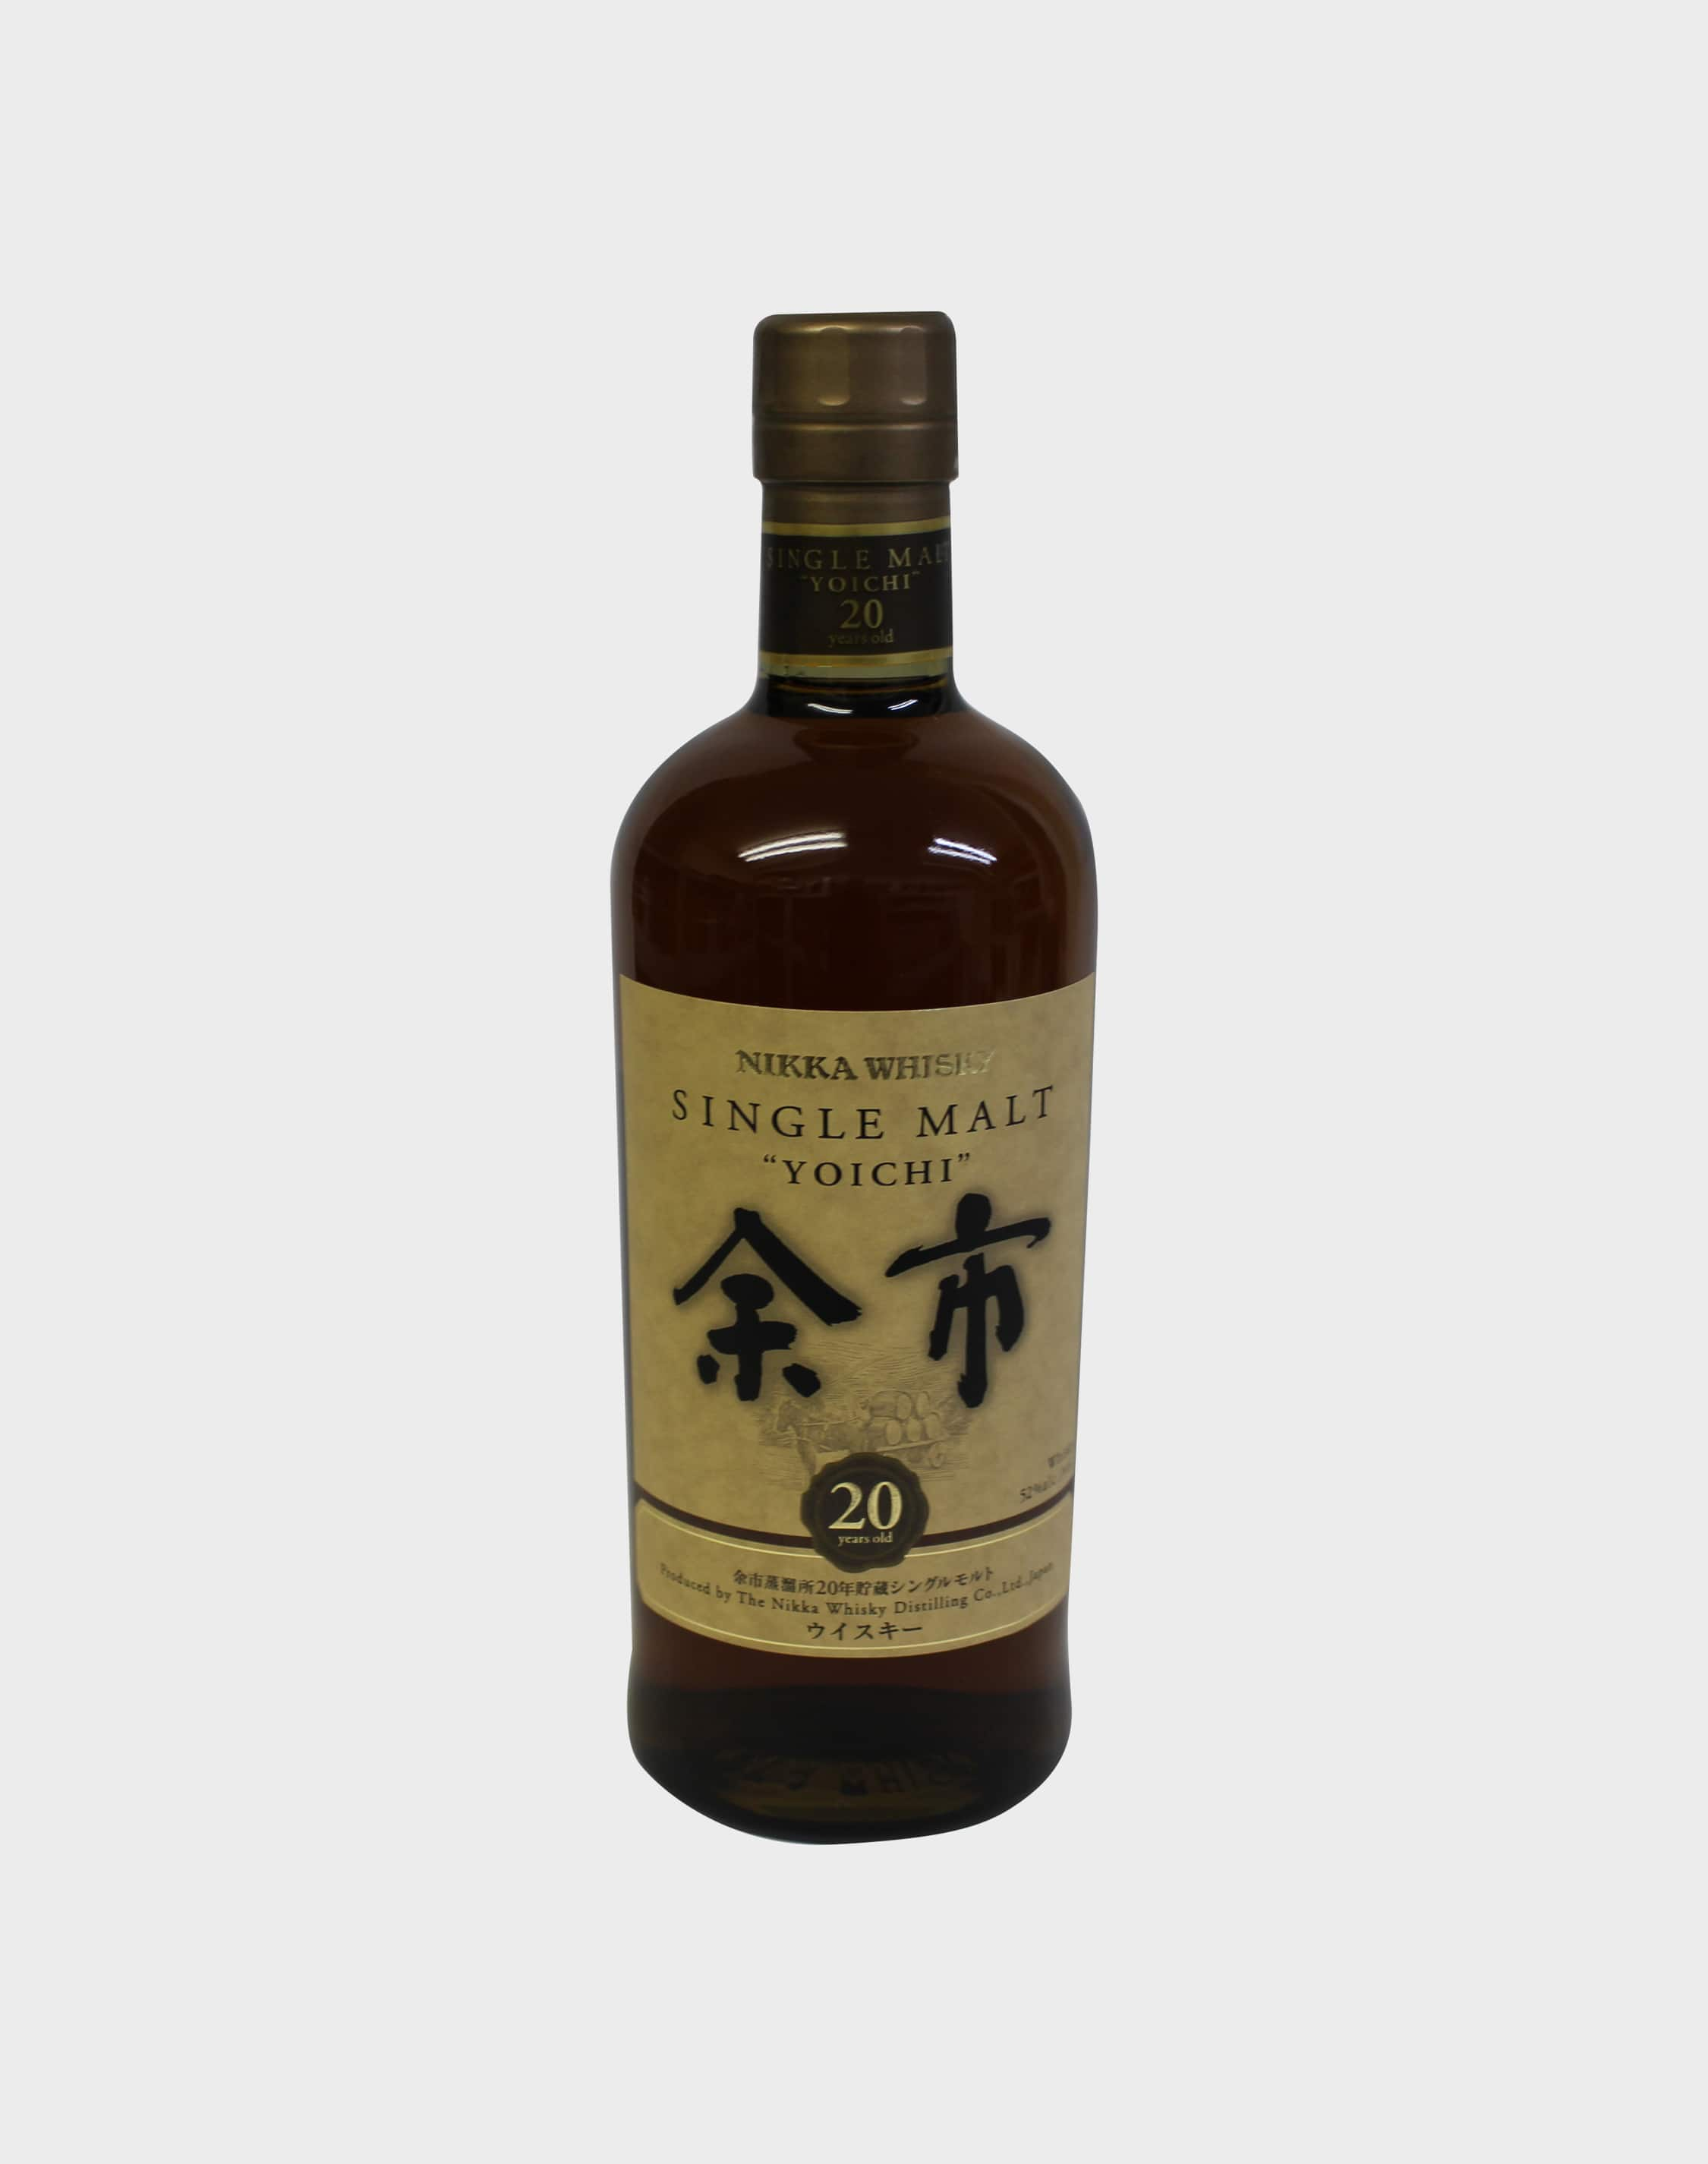 Nikka Yoichi 20 Year Old Whisky (No Box)